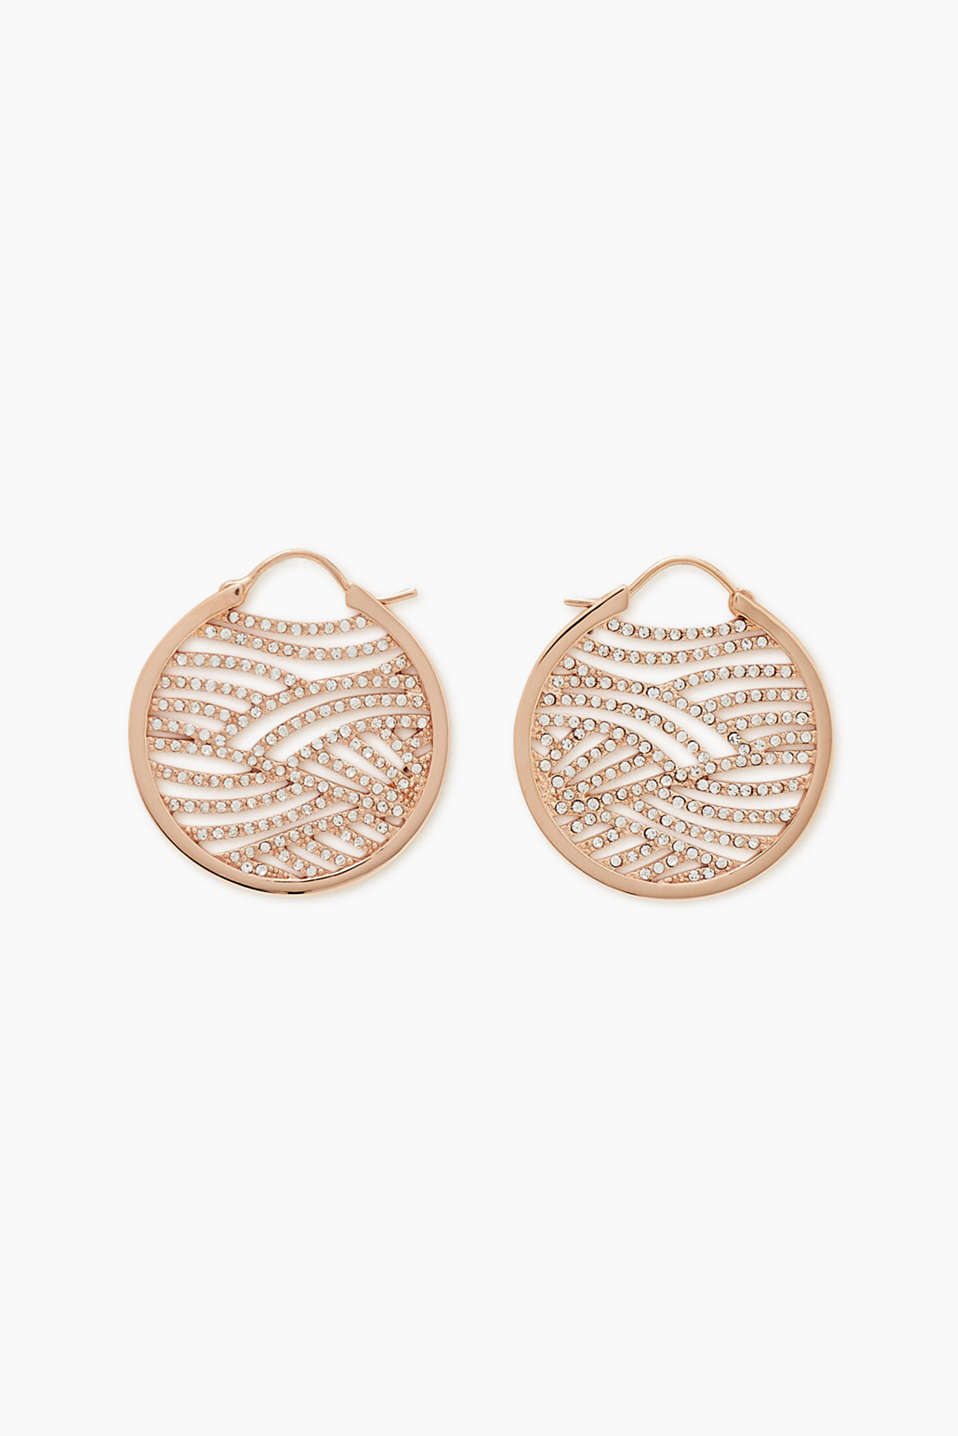 Hoop earrings in a high-quality metal alloy set with zirconia